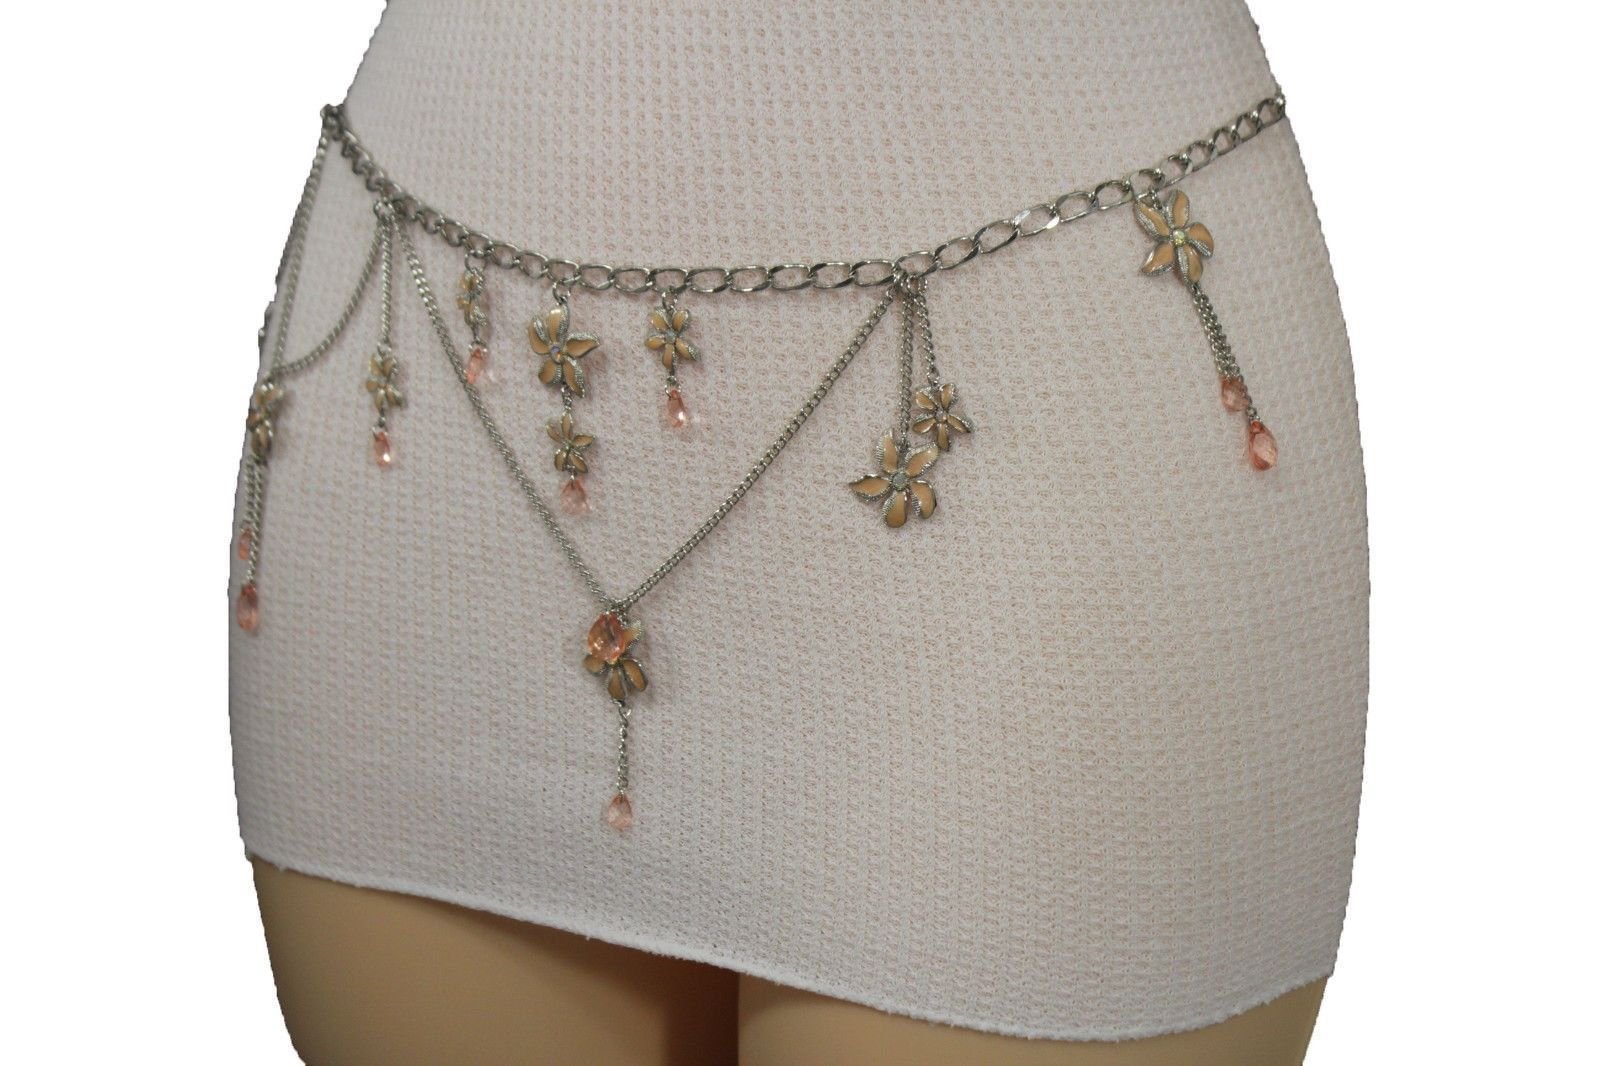 Waist chain women nude